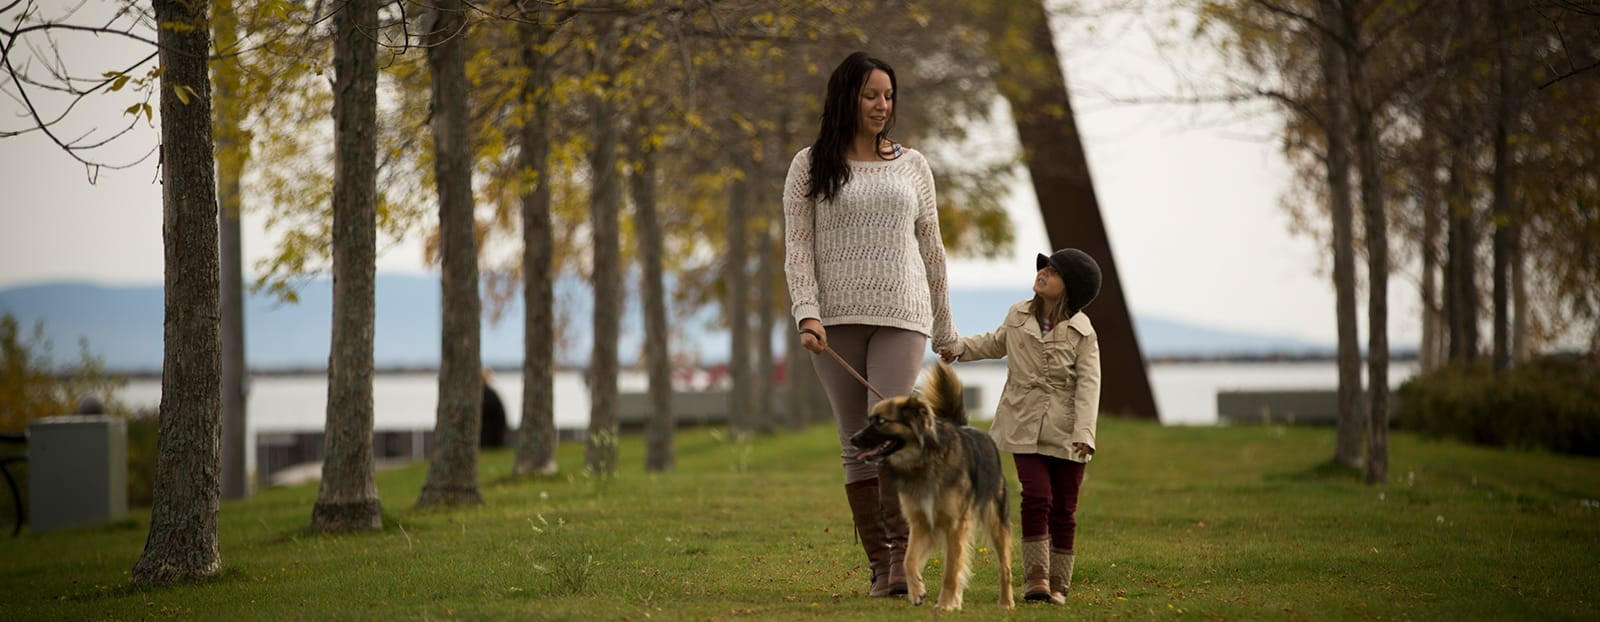 mother and daughter walking with their dog